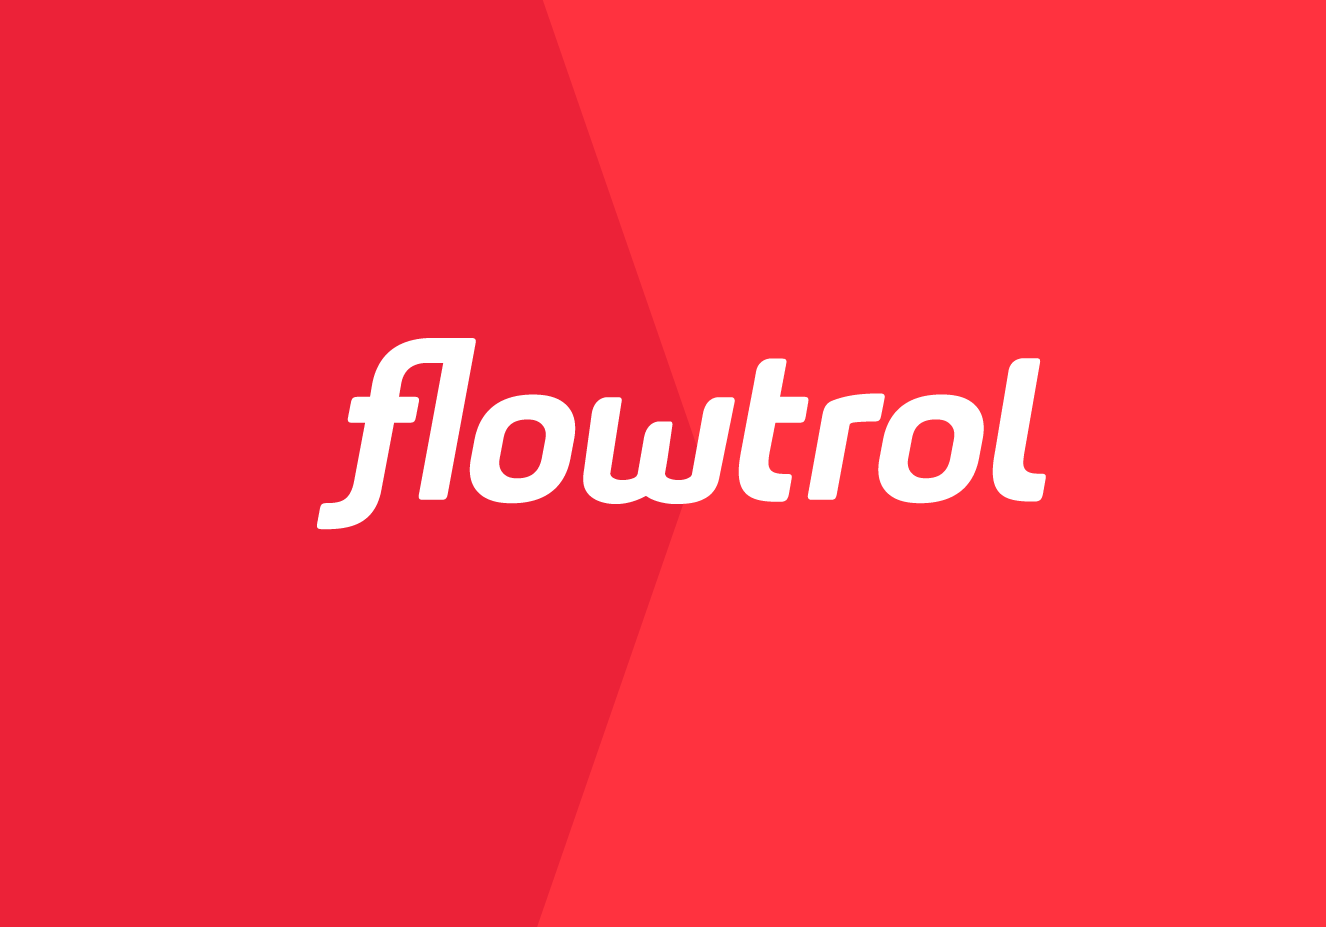 Roth Steuerungstechnik - 27. November 2015 - flowtrol in neuem Design